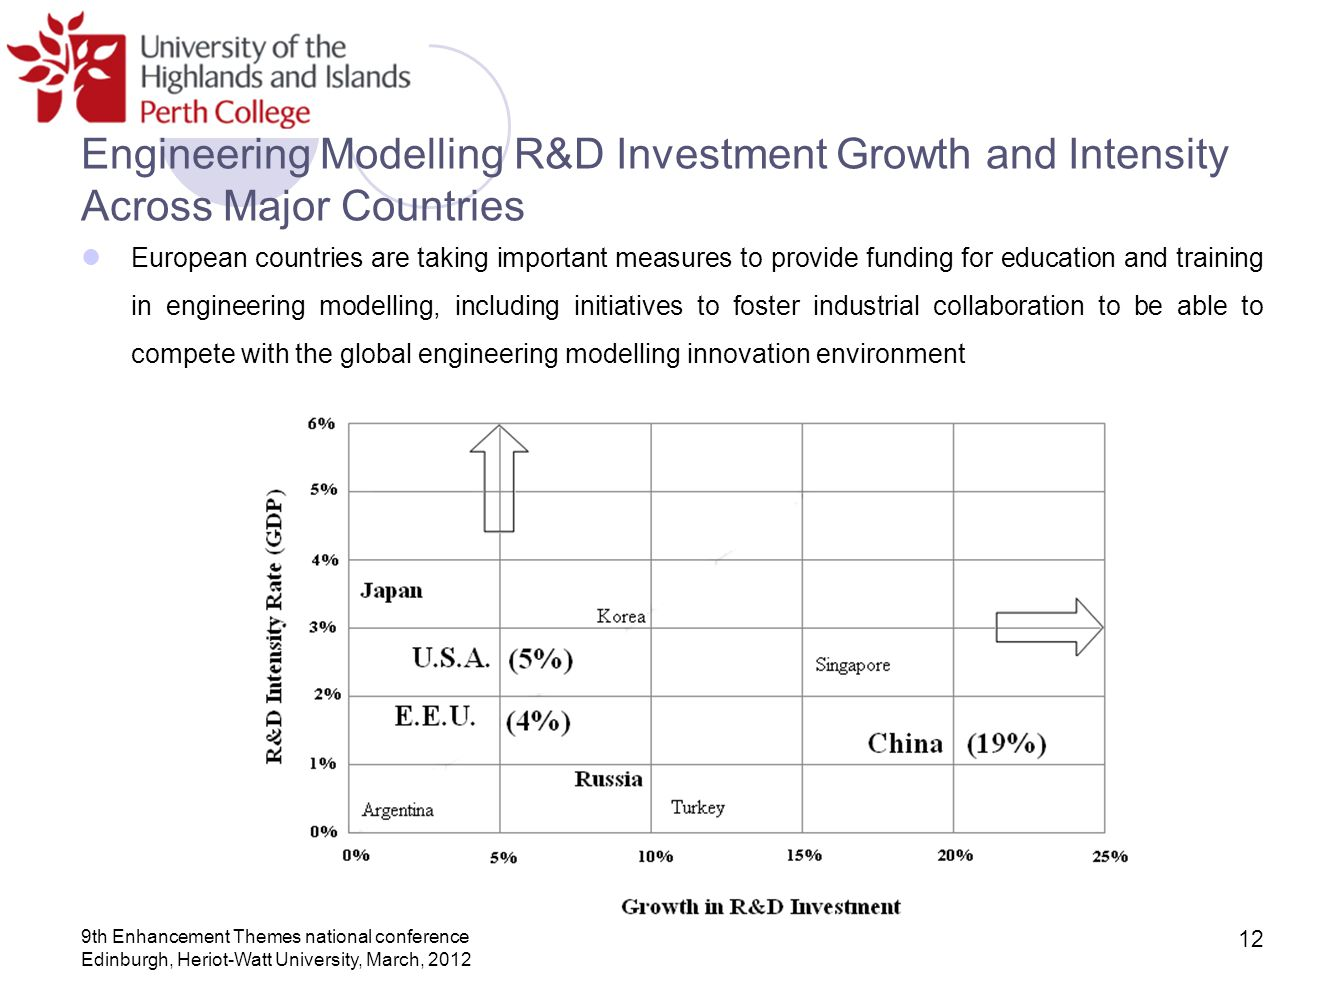 Engineering Modelling R&D Investment Growth and Intensity Across Major Countries